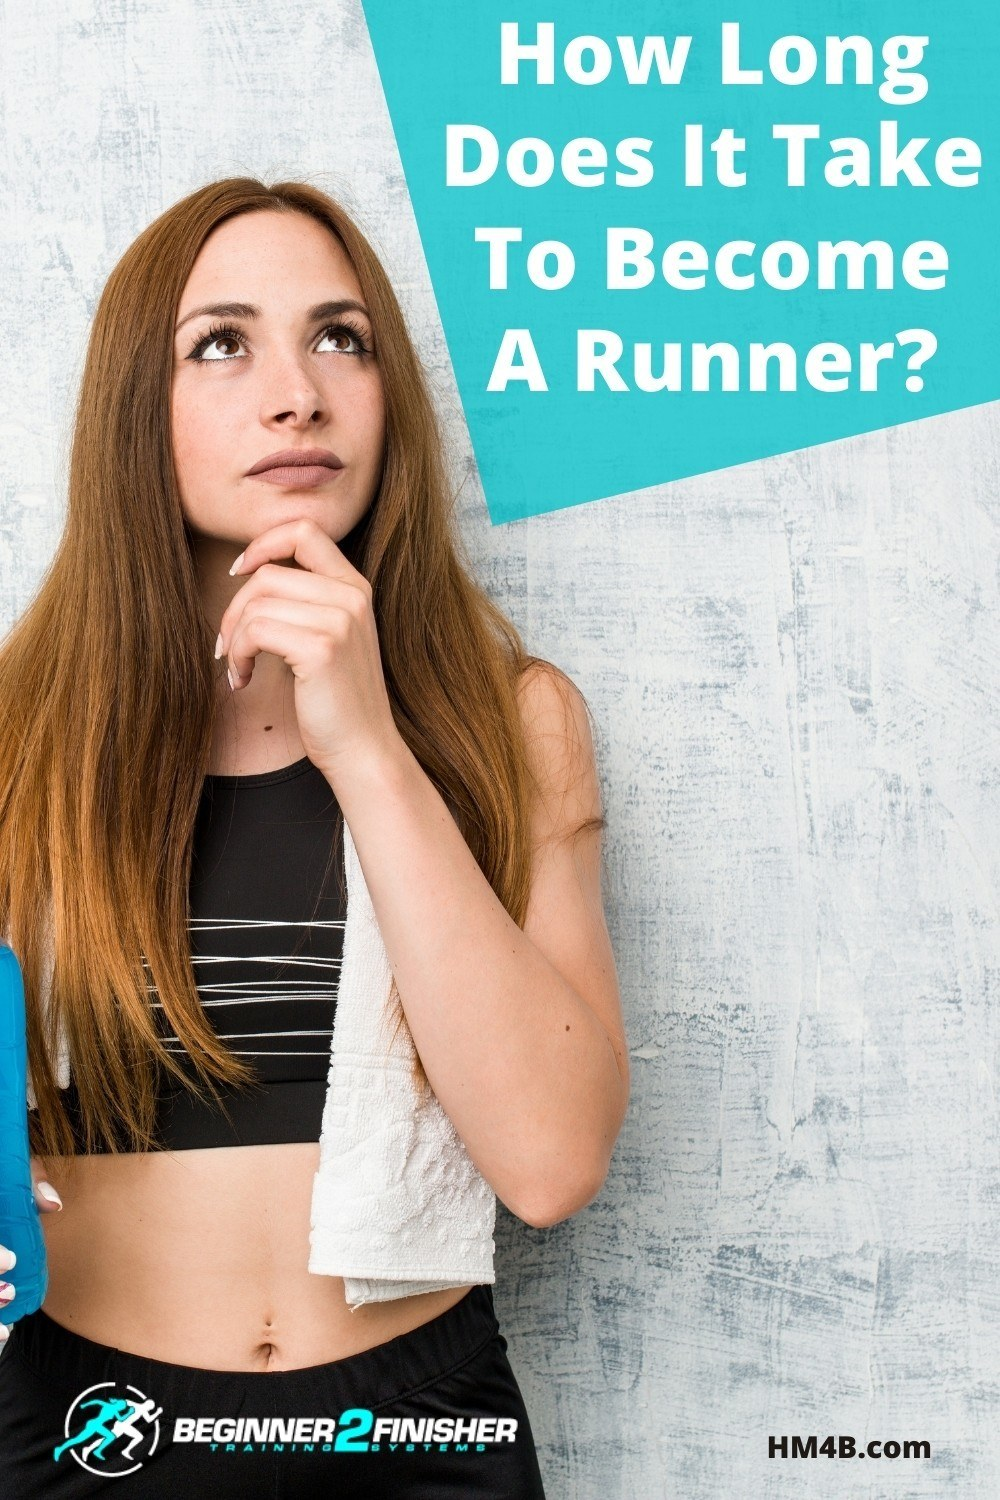 How Long Does It Take To Become A Runner?